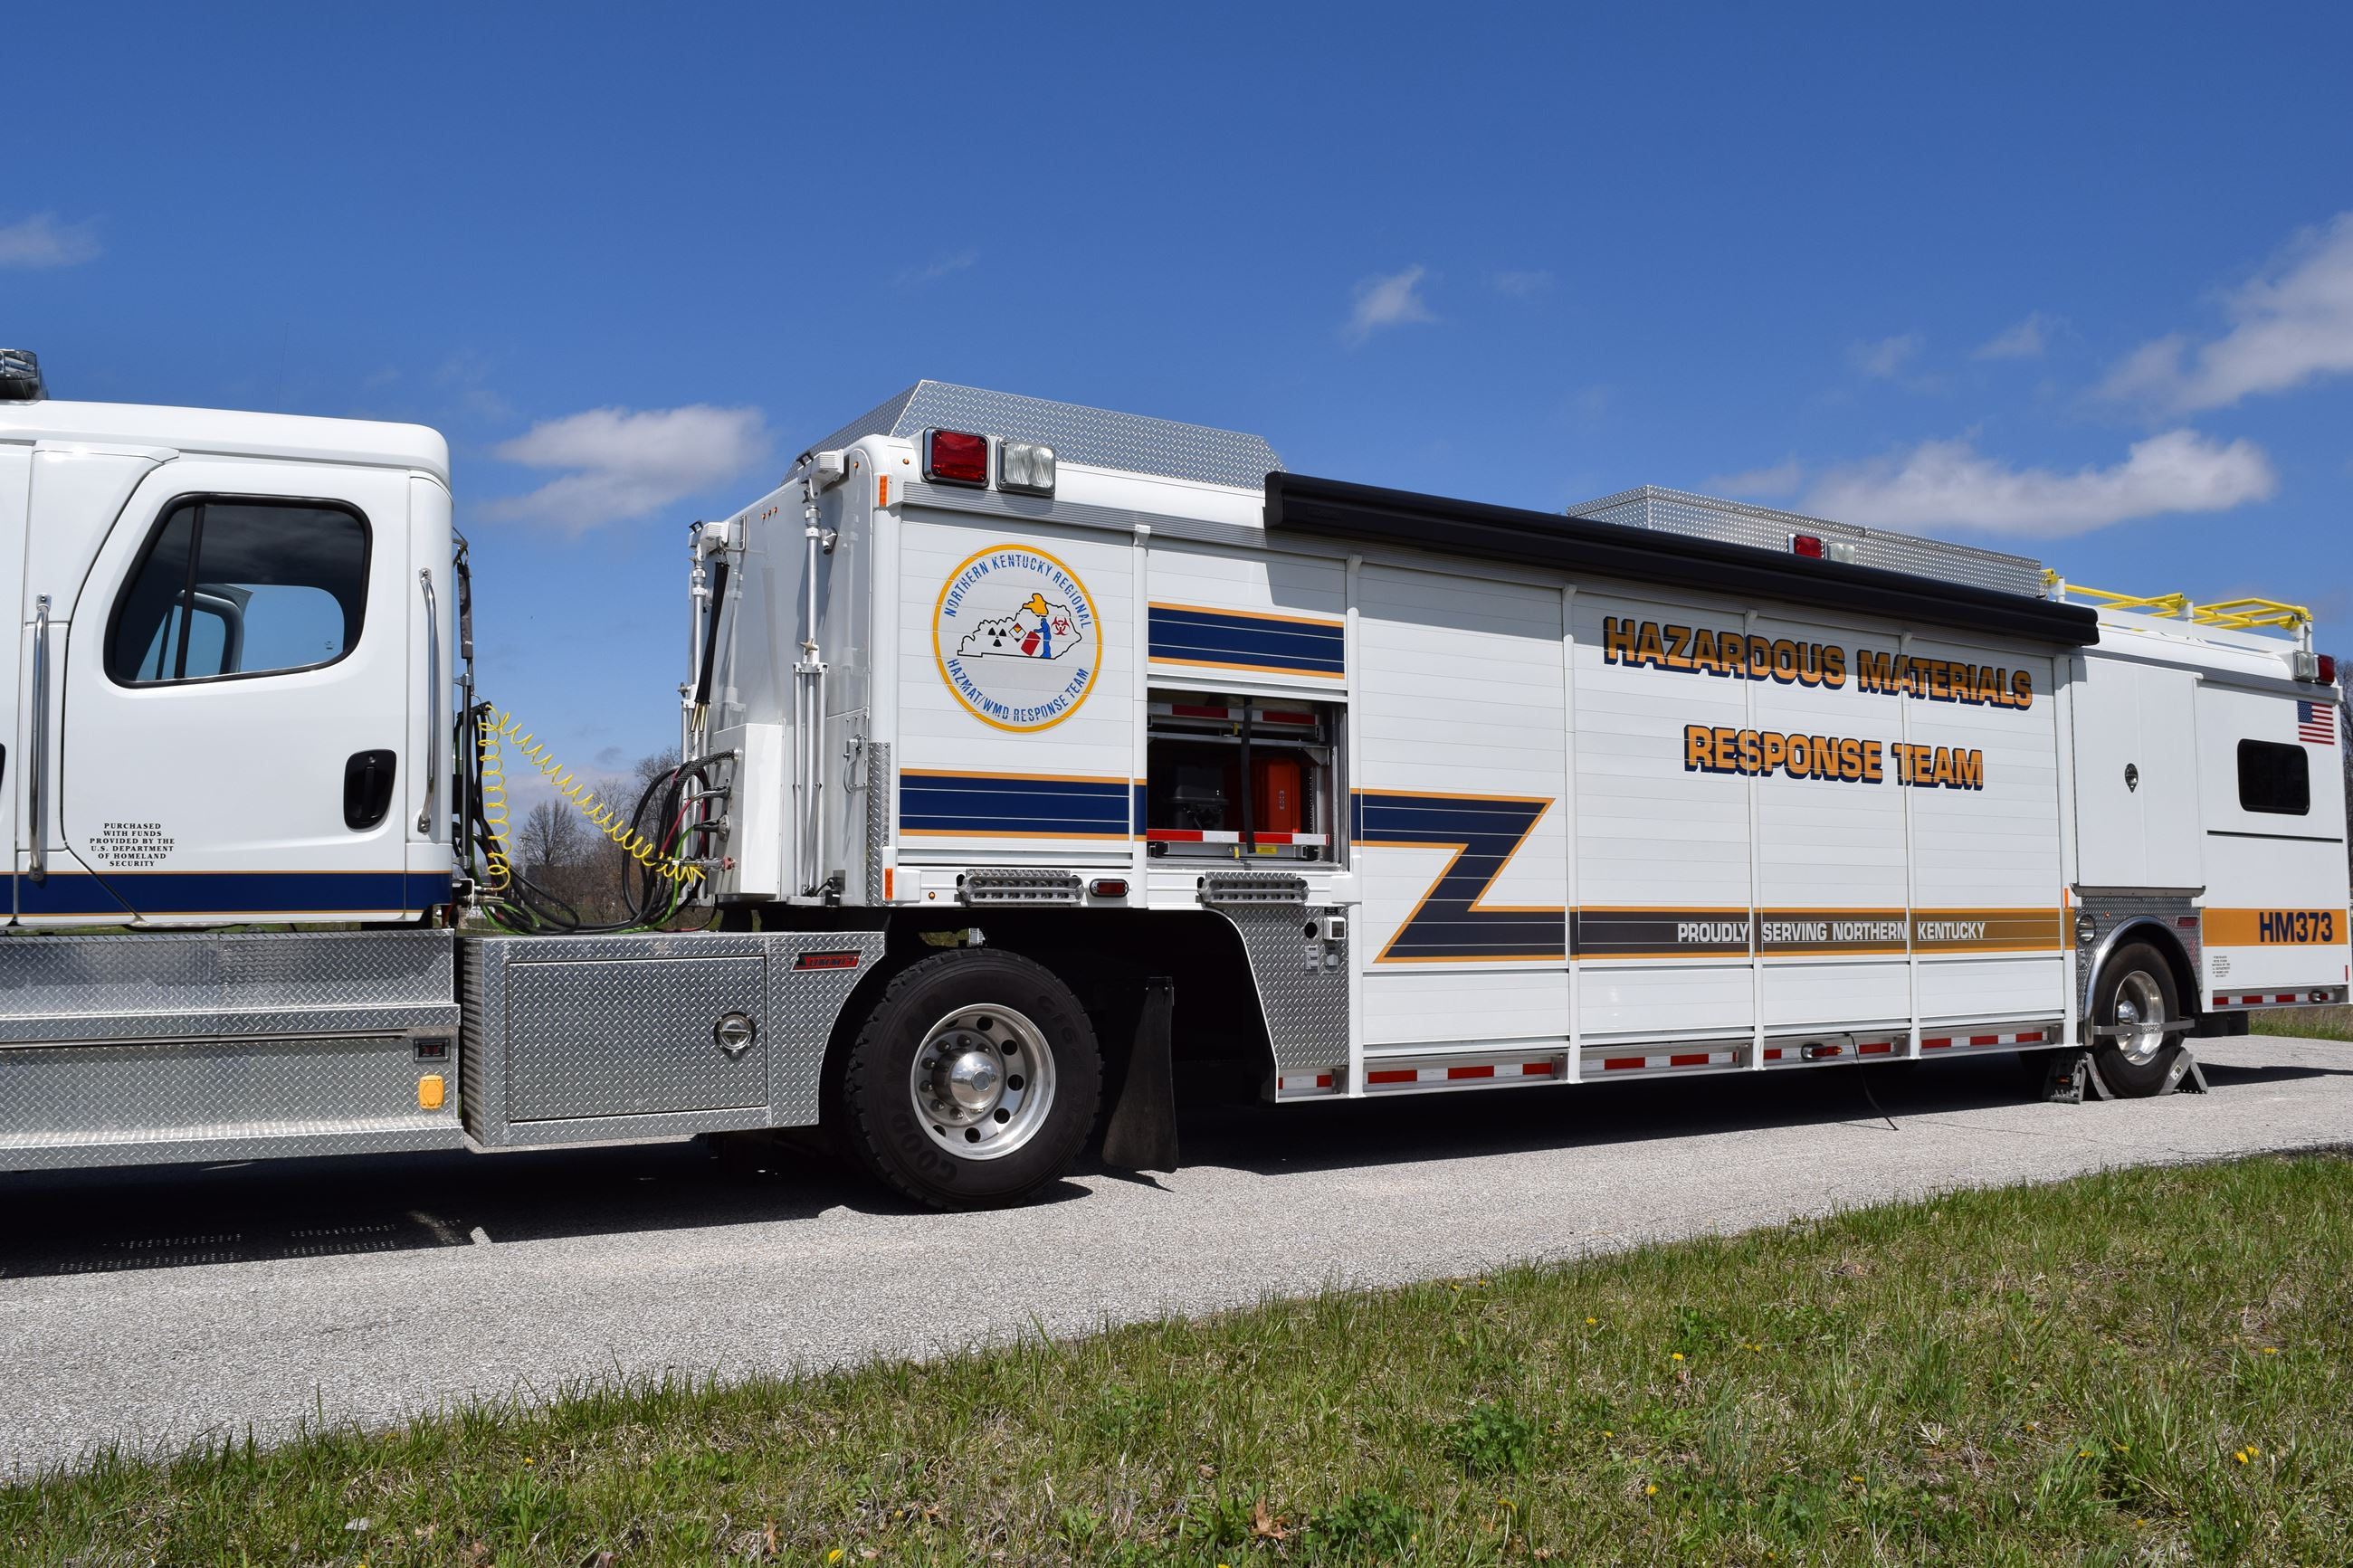 Hazardous Materials Response Team Truck